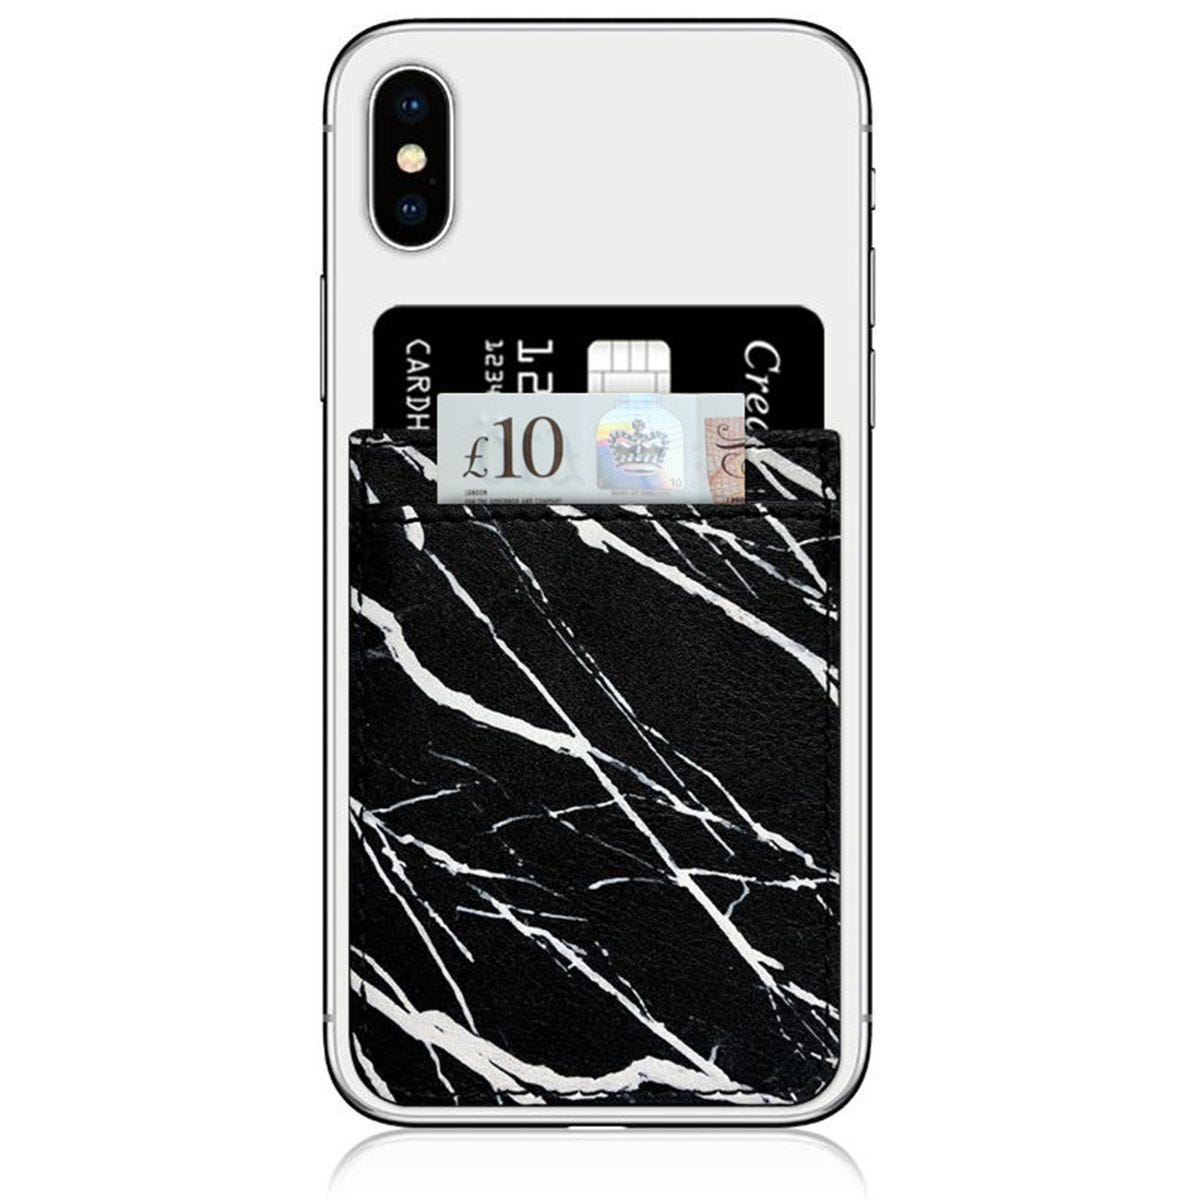 iDecoz Black Marble Phone Pocket